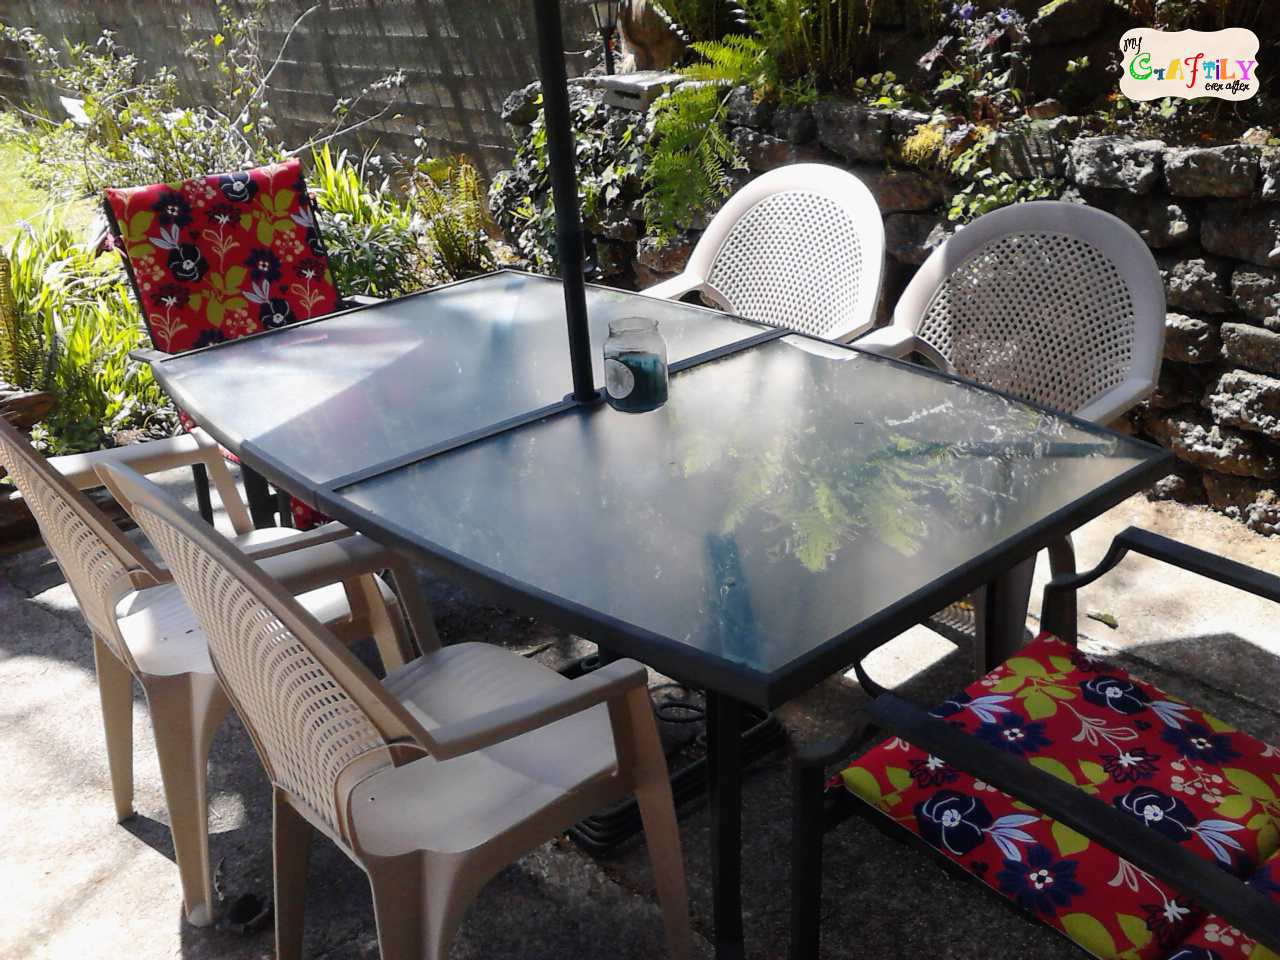 Upgraded Patio Set From Craigslist ...